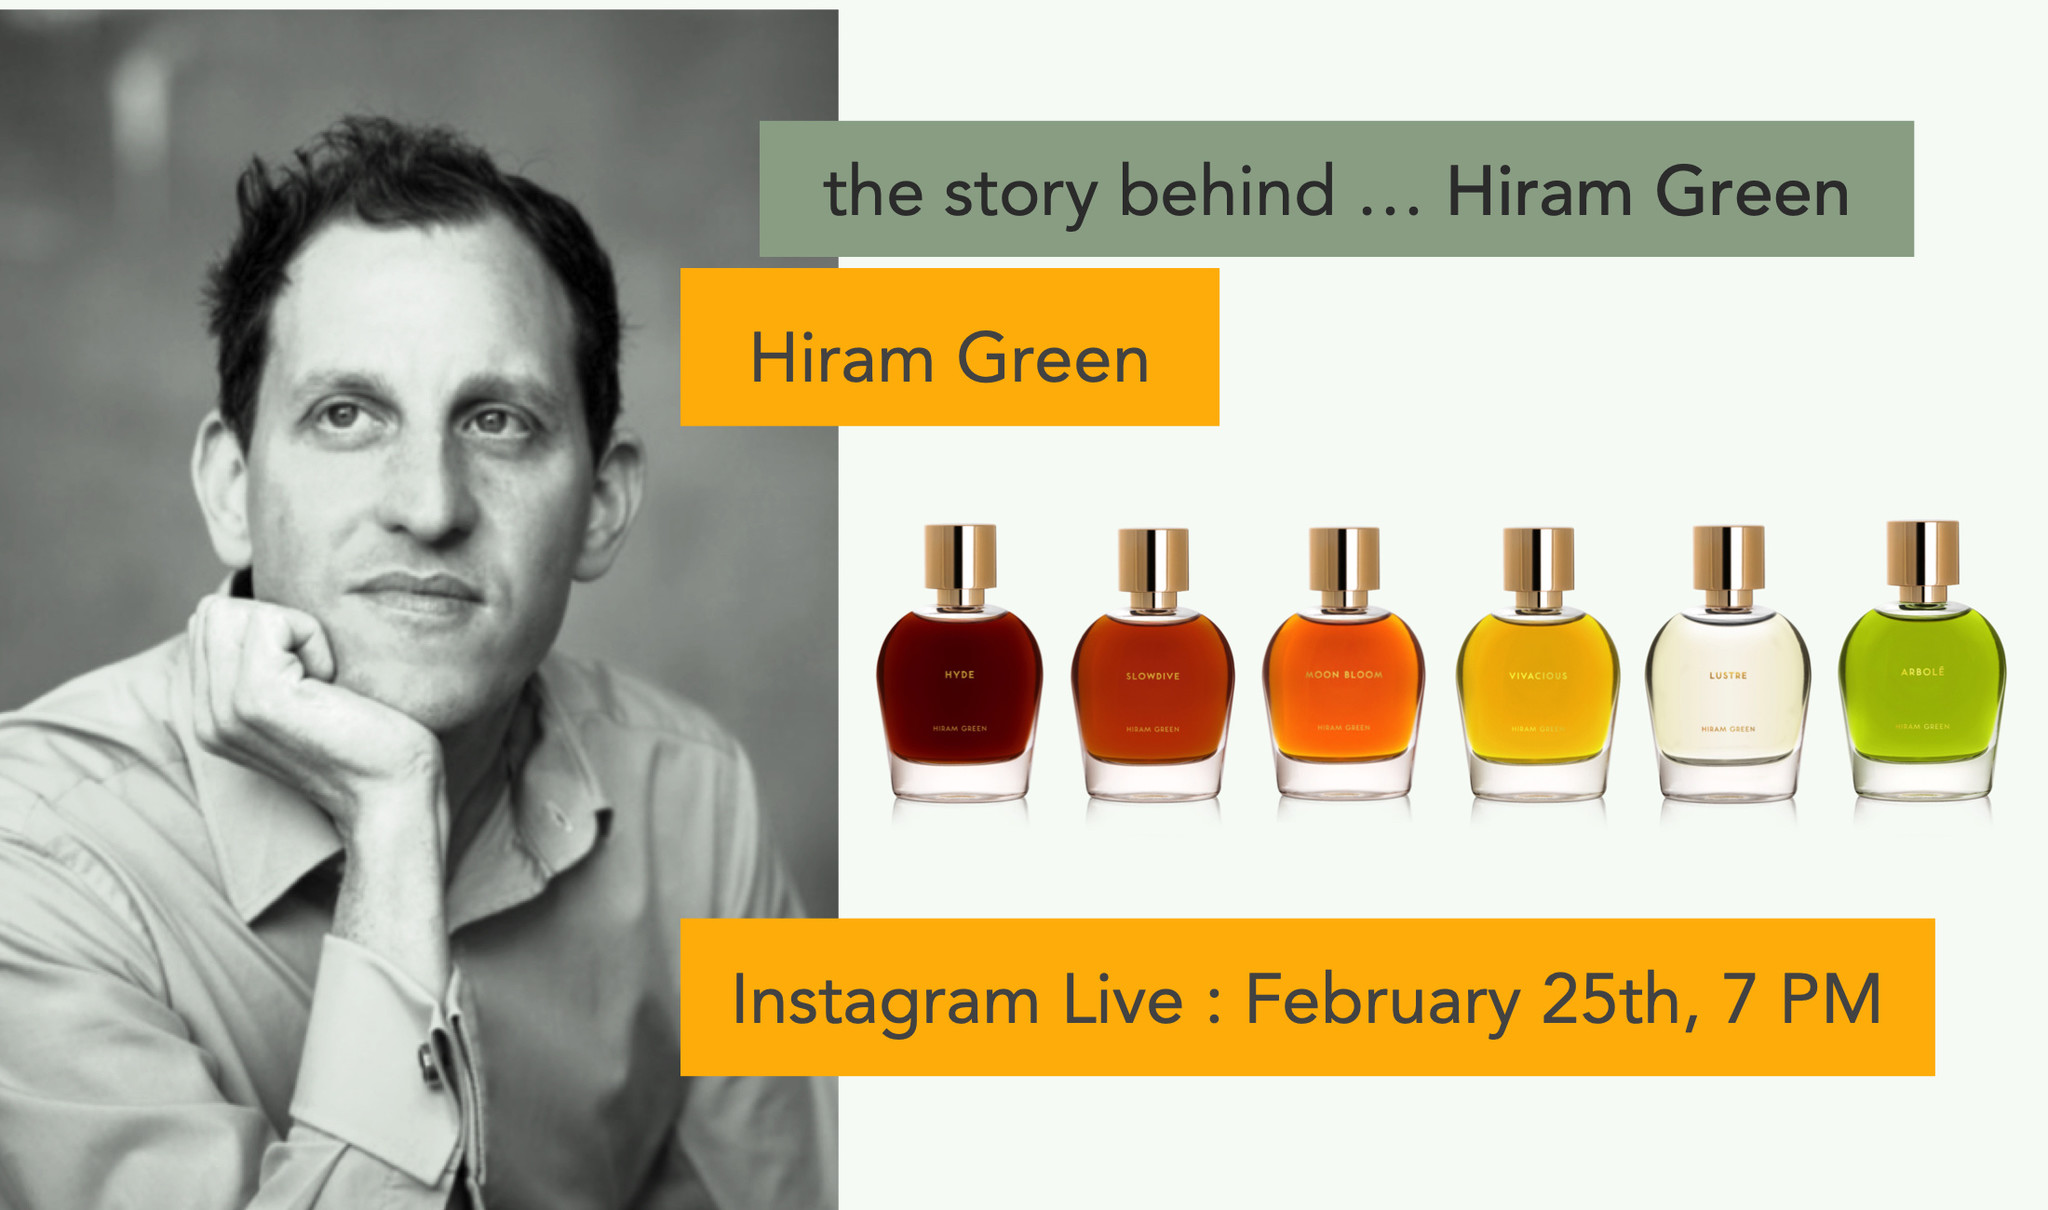 the story behind ... Hiram Green